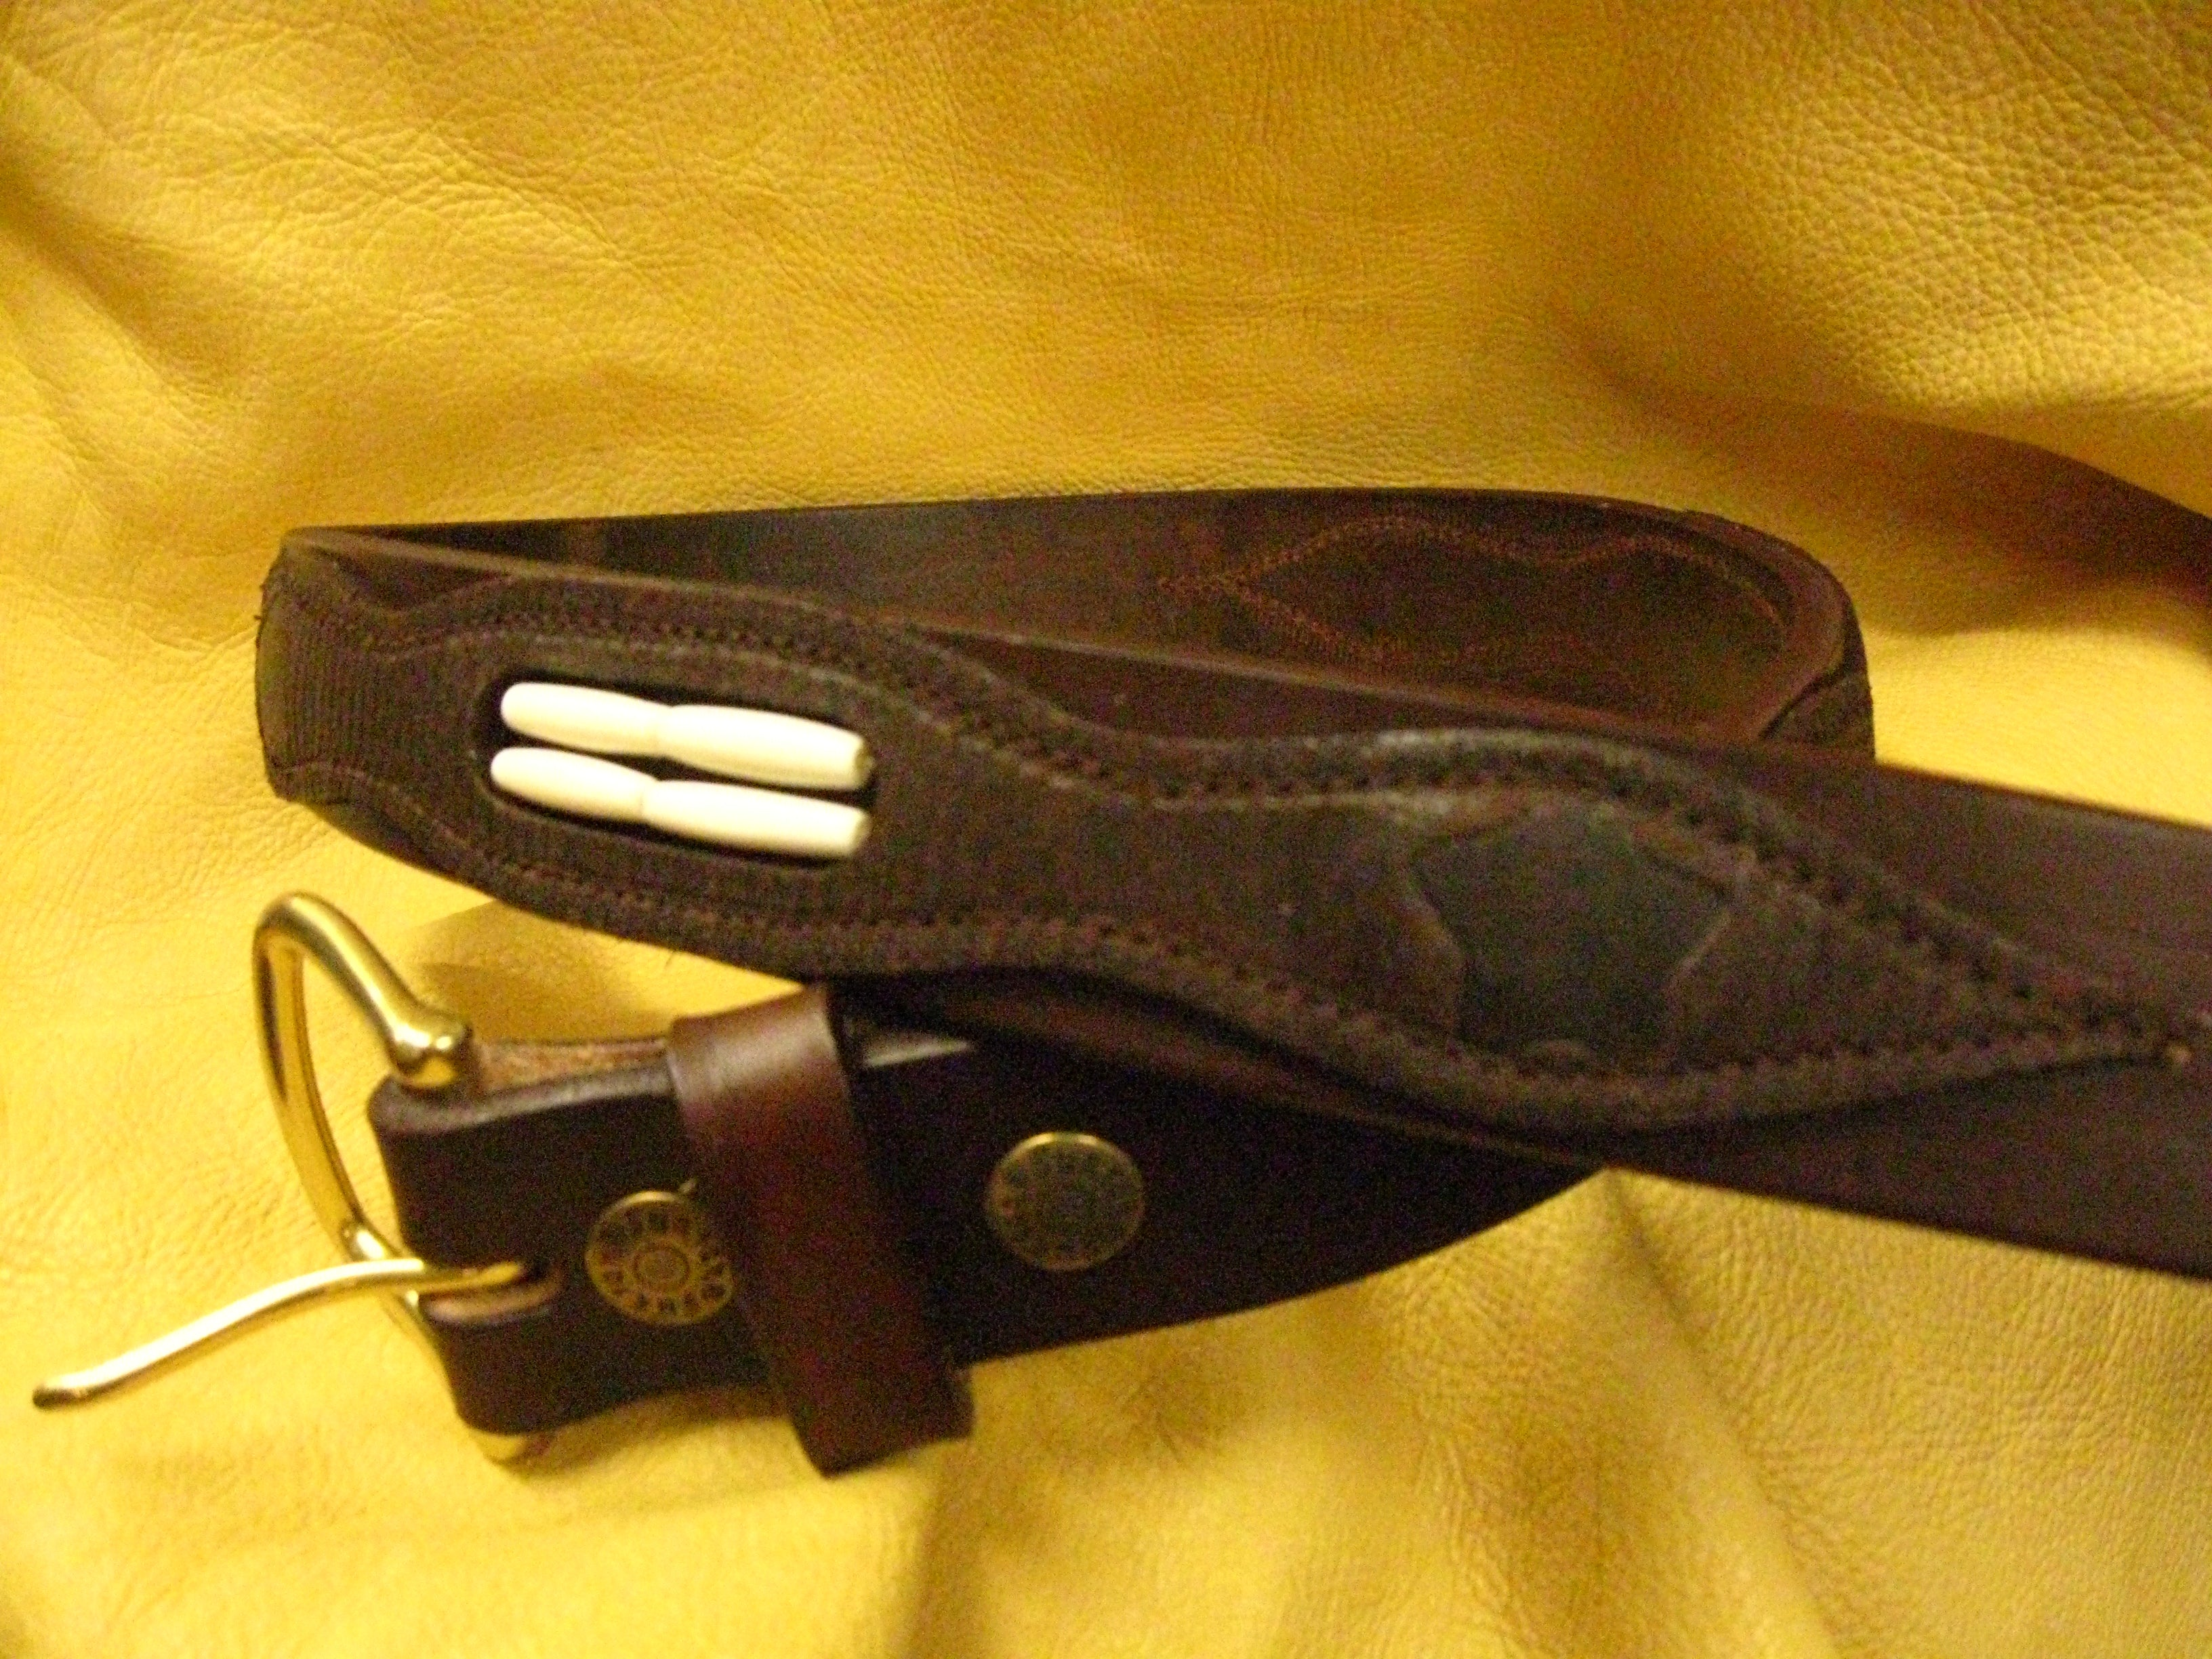 Sur Tan Classic Rugged Apache leather belt with overlay design, cow bone beads and solid brass buckle